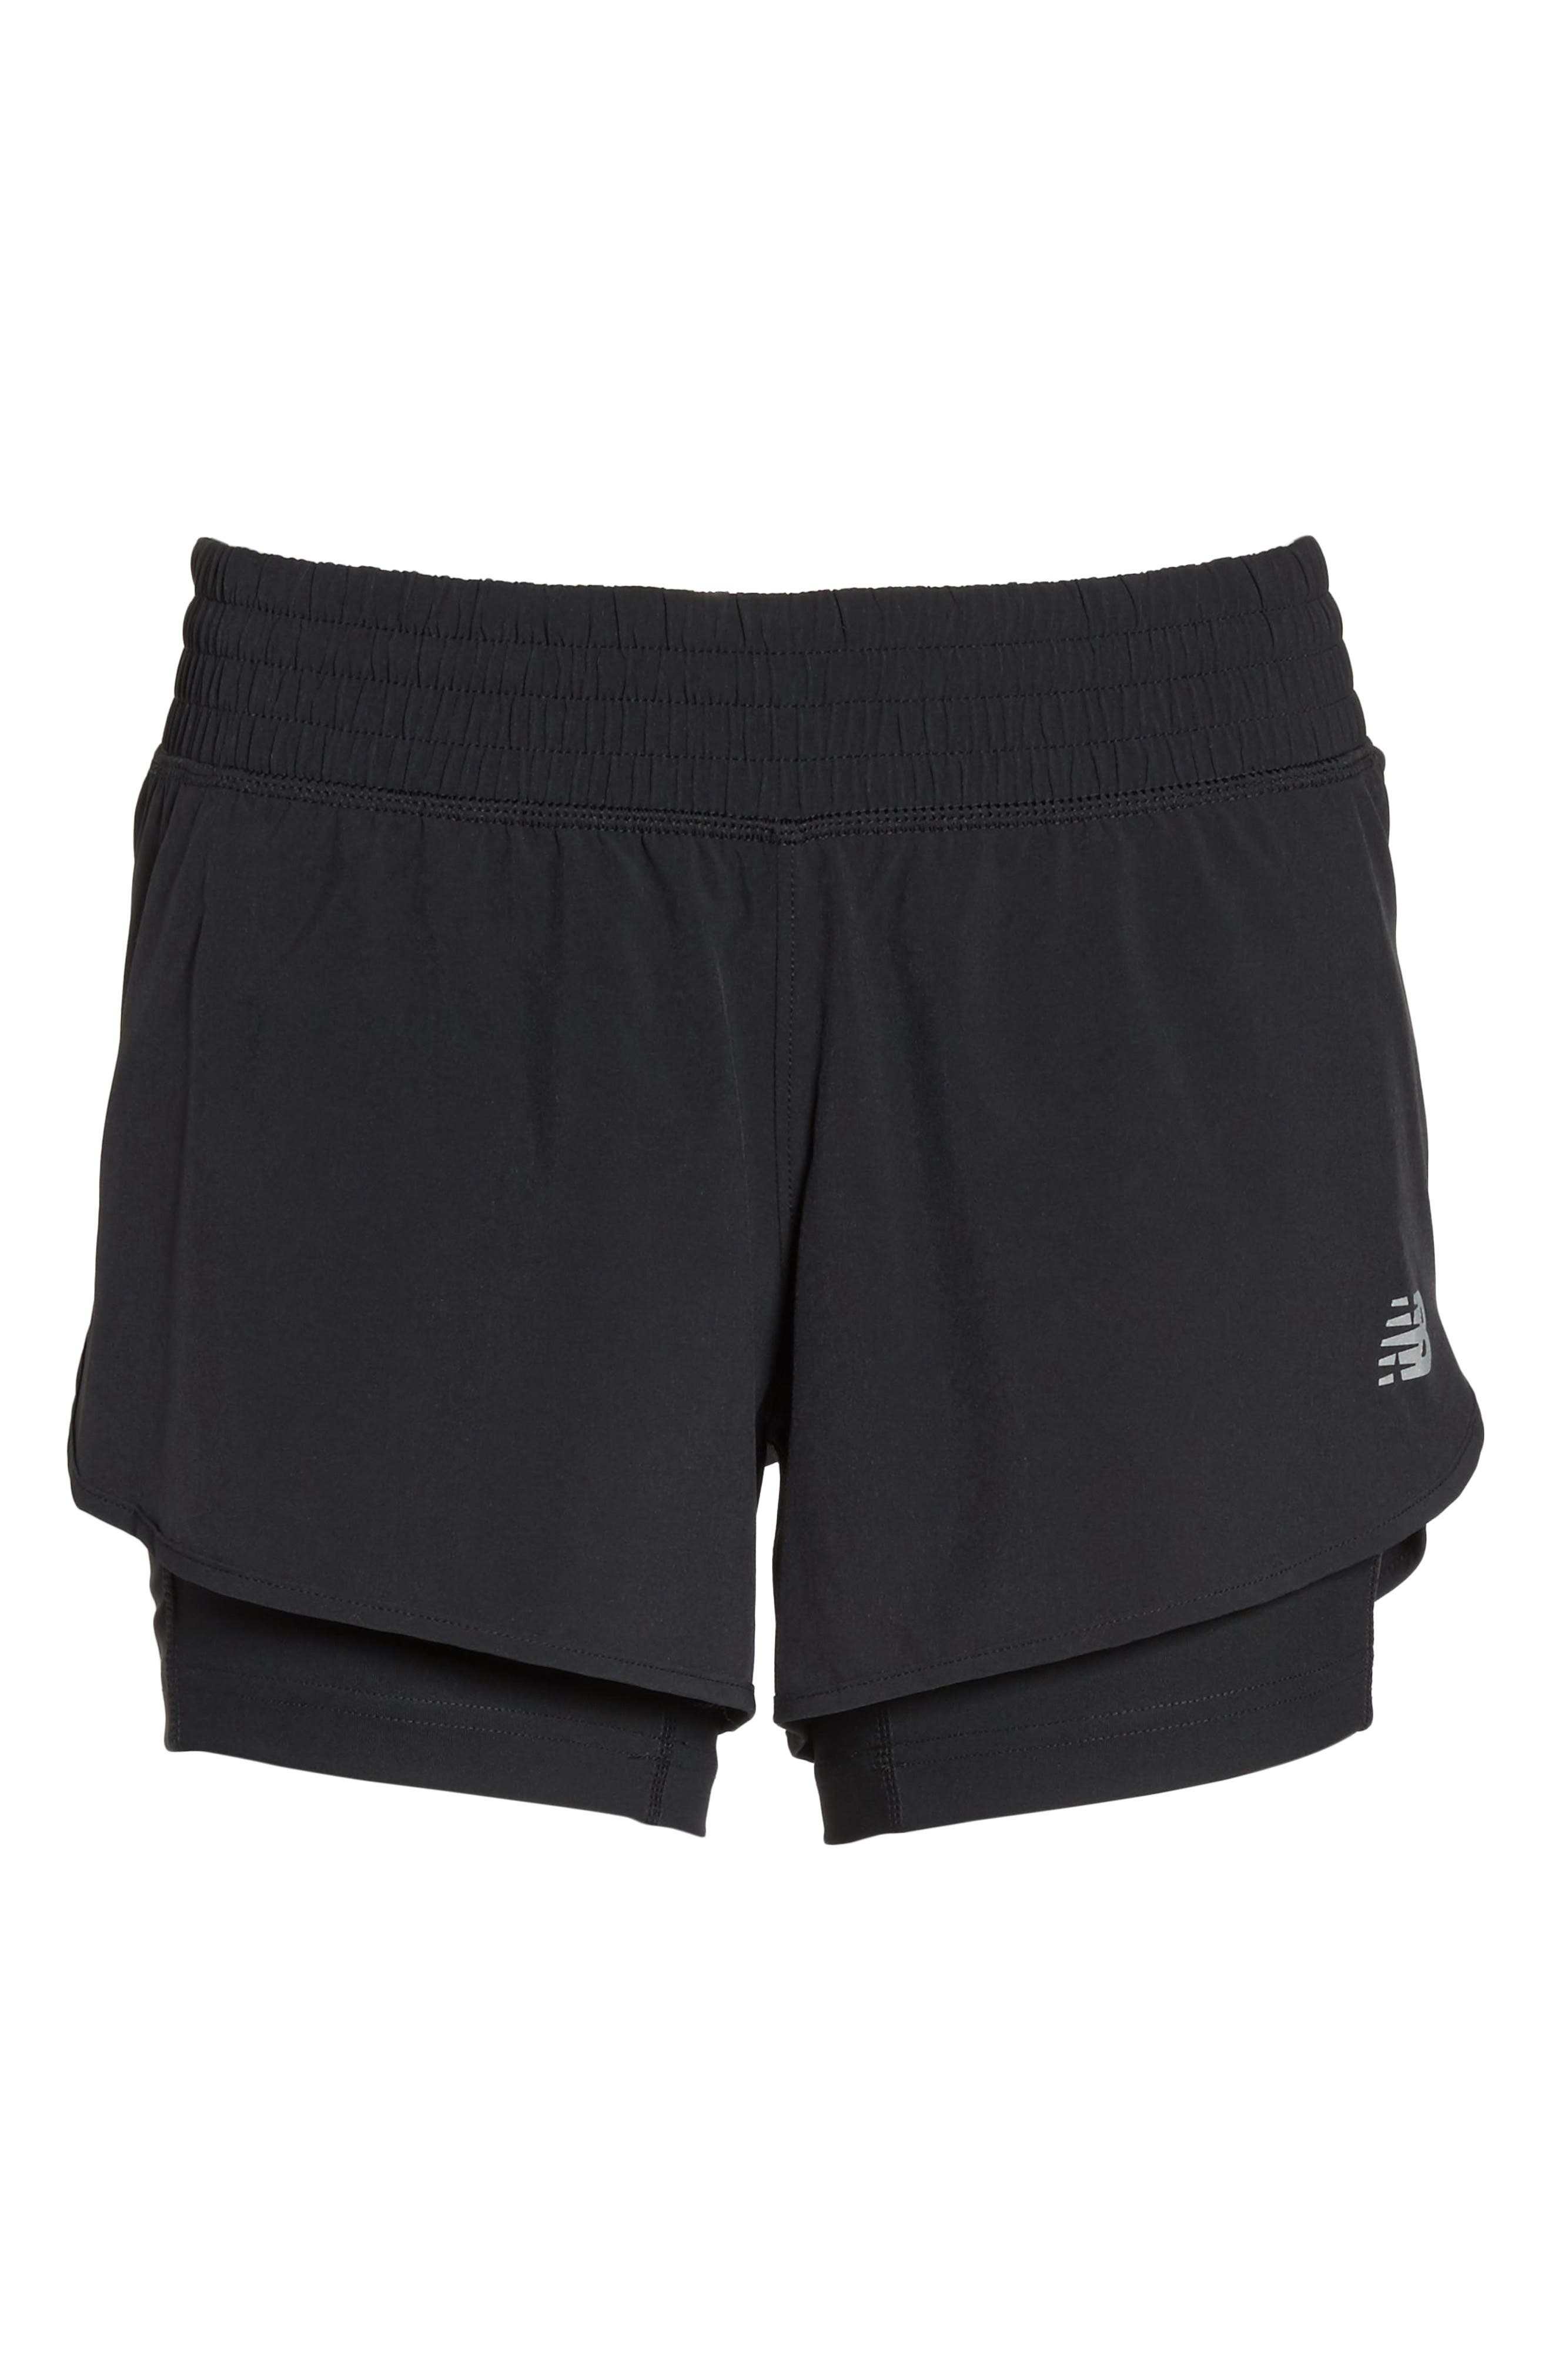 Impact Layered Running Shorts,                             Alternate thumbnail 7, color,                             001